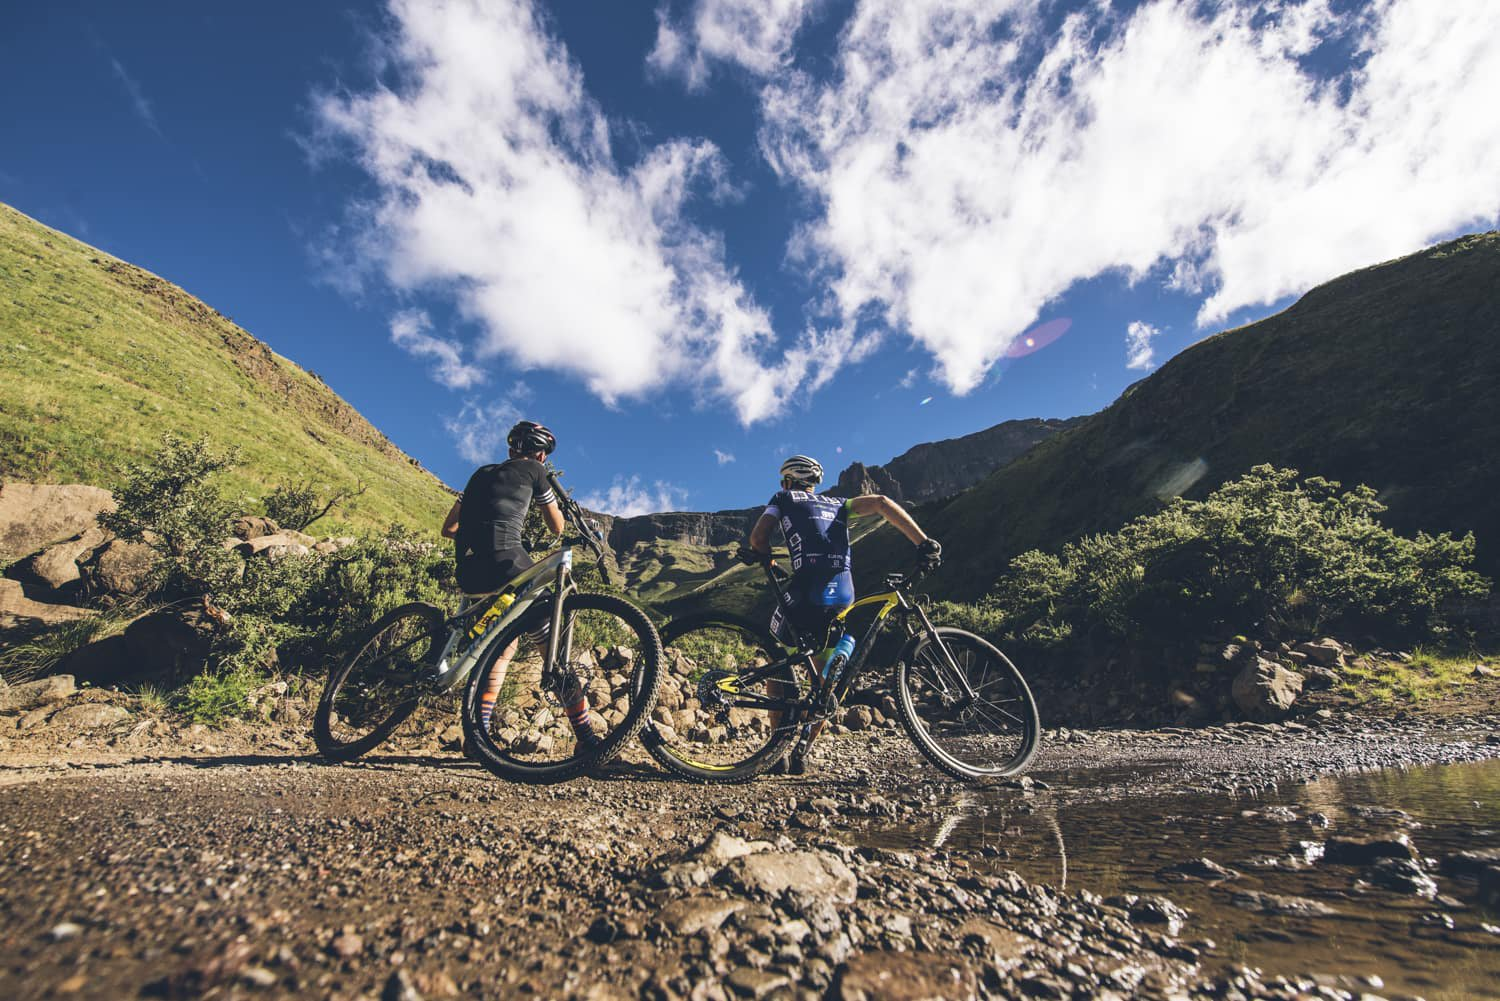 sani-pass-desmond-louw-bicycling-magazine-wowrides-0059